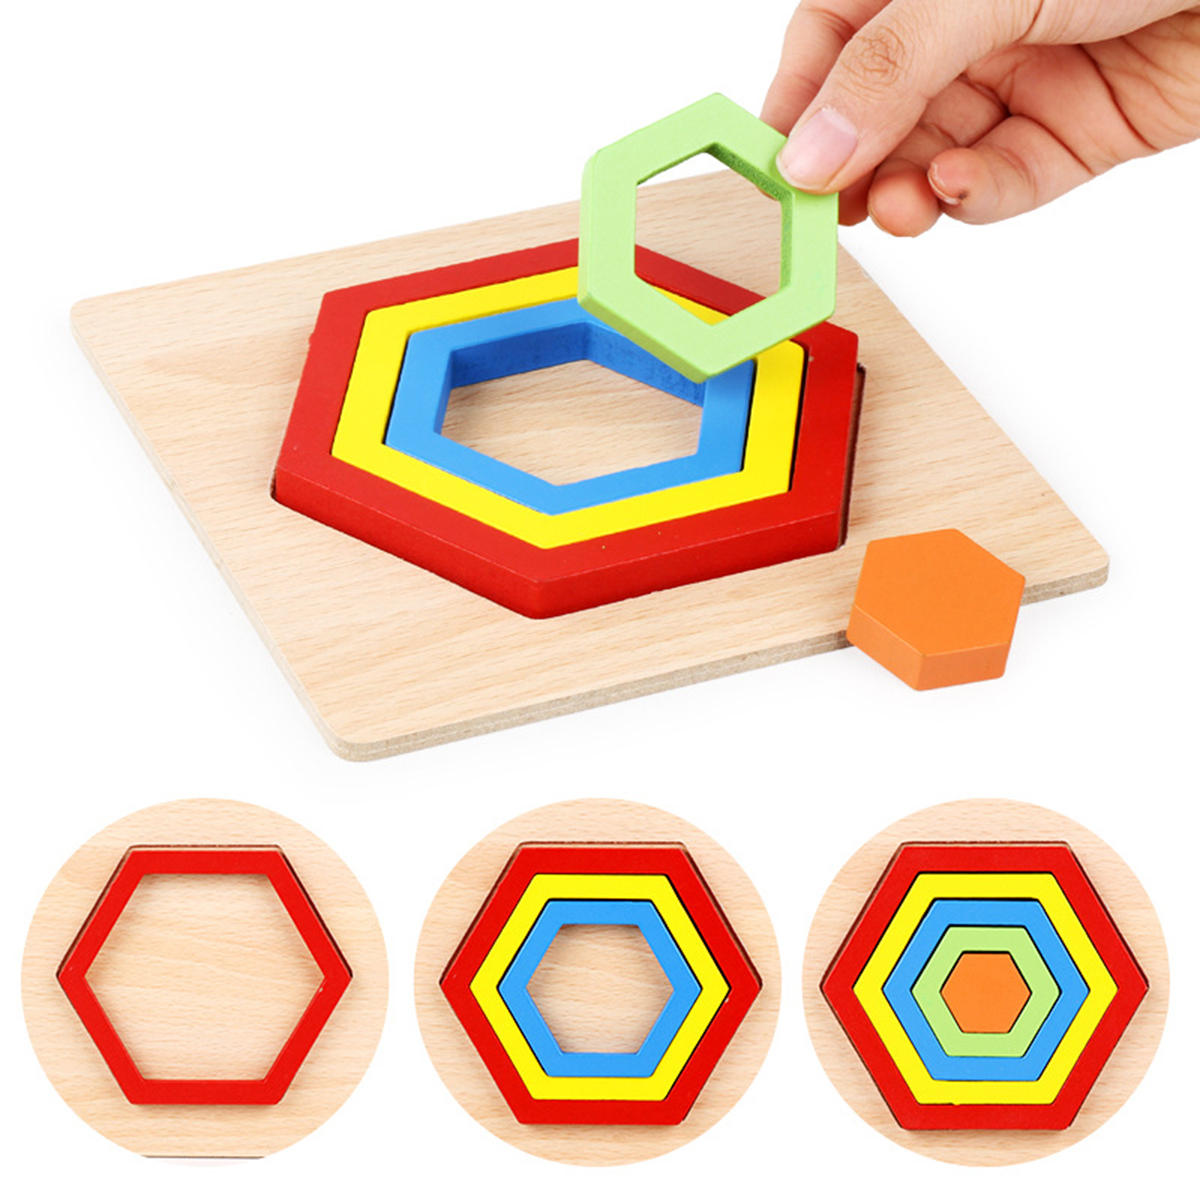 Shape Cognition Board Geometry Jigsaw Puzzle Wooden Kids Educational Learning Toys - 3